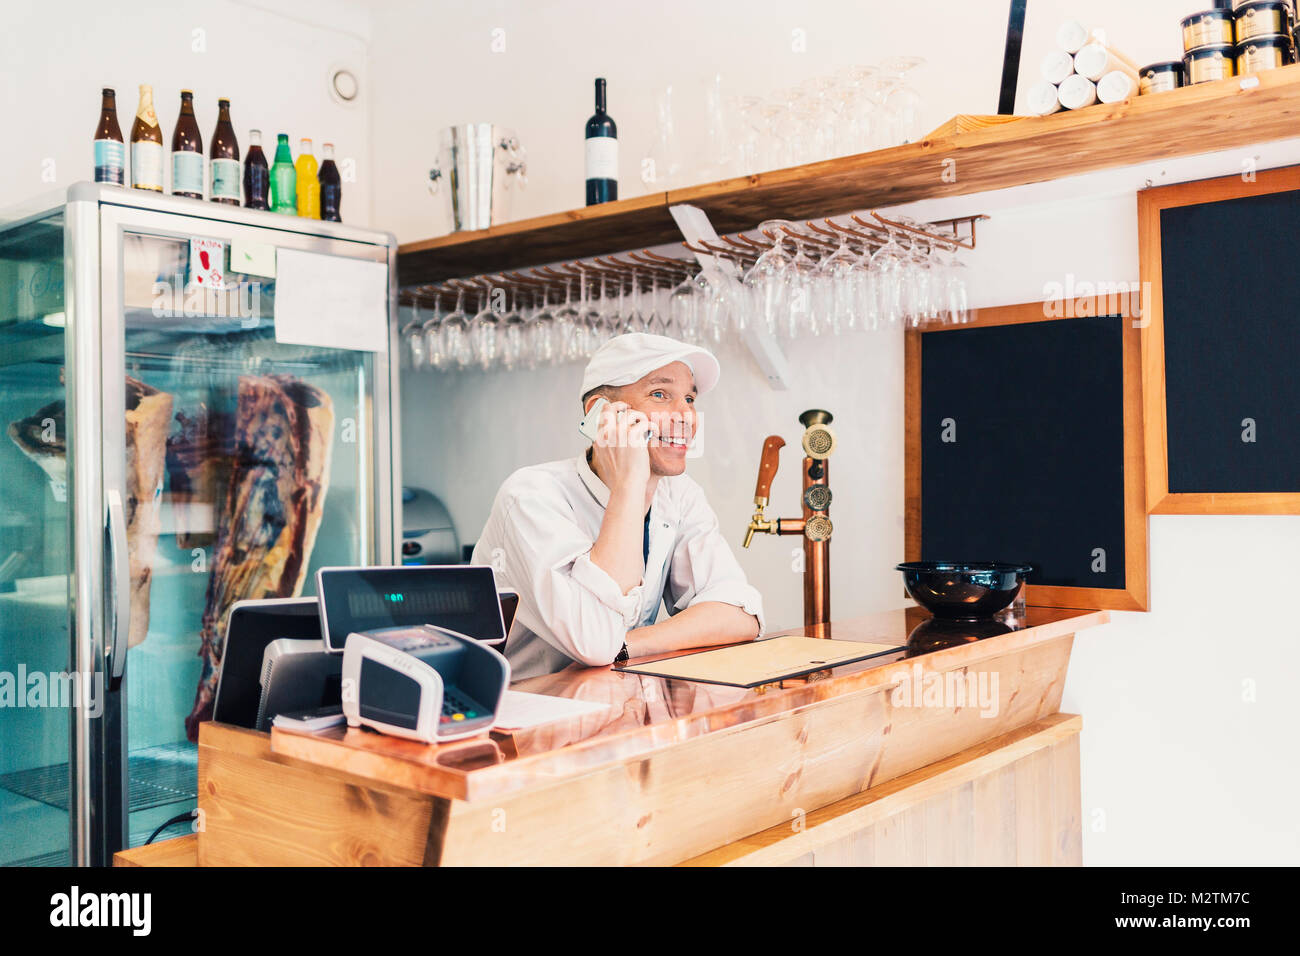 Butcher on phone in Sweden - Stock Image